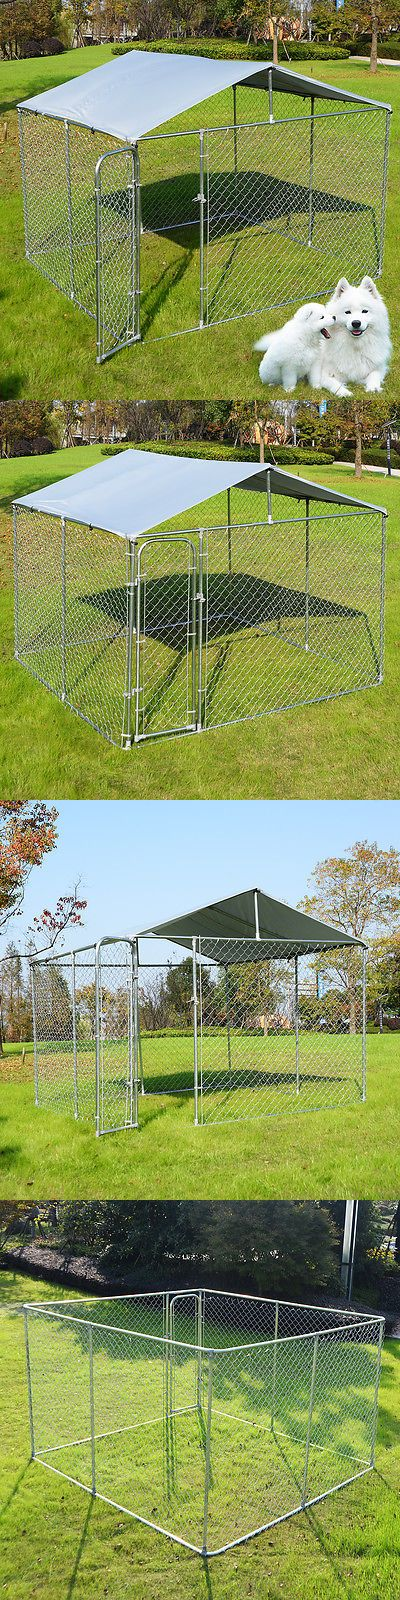 Fences and Exercise Pens 20748: Large Pet Dog Run House Kennel Shade Cage 10' X 10' Roof Cover Backyard Playpen BUY IT NOW ONLY: $295.99